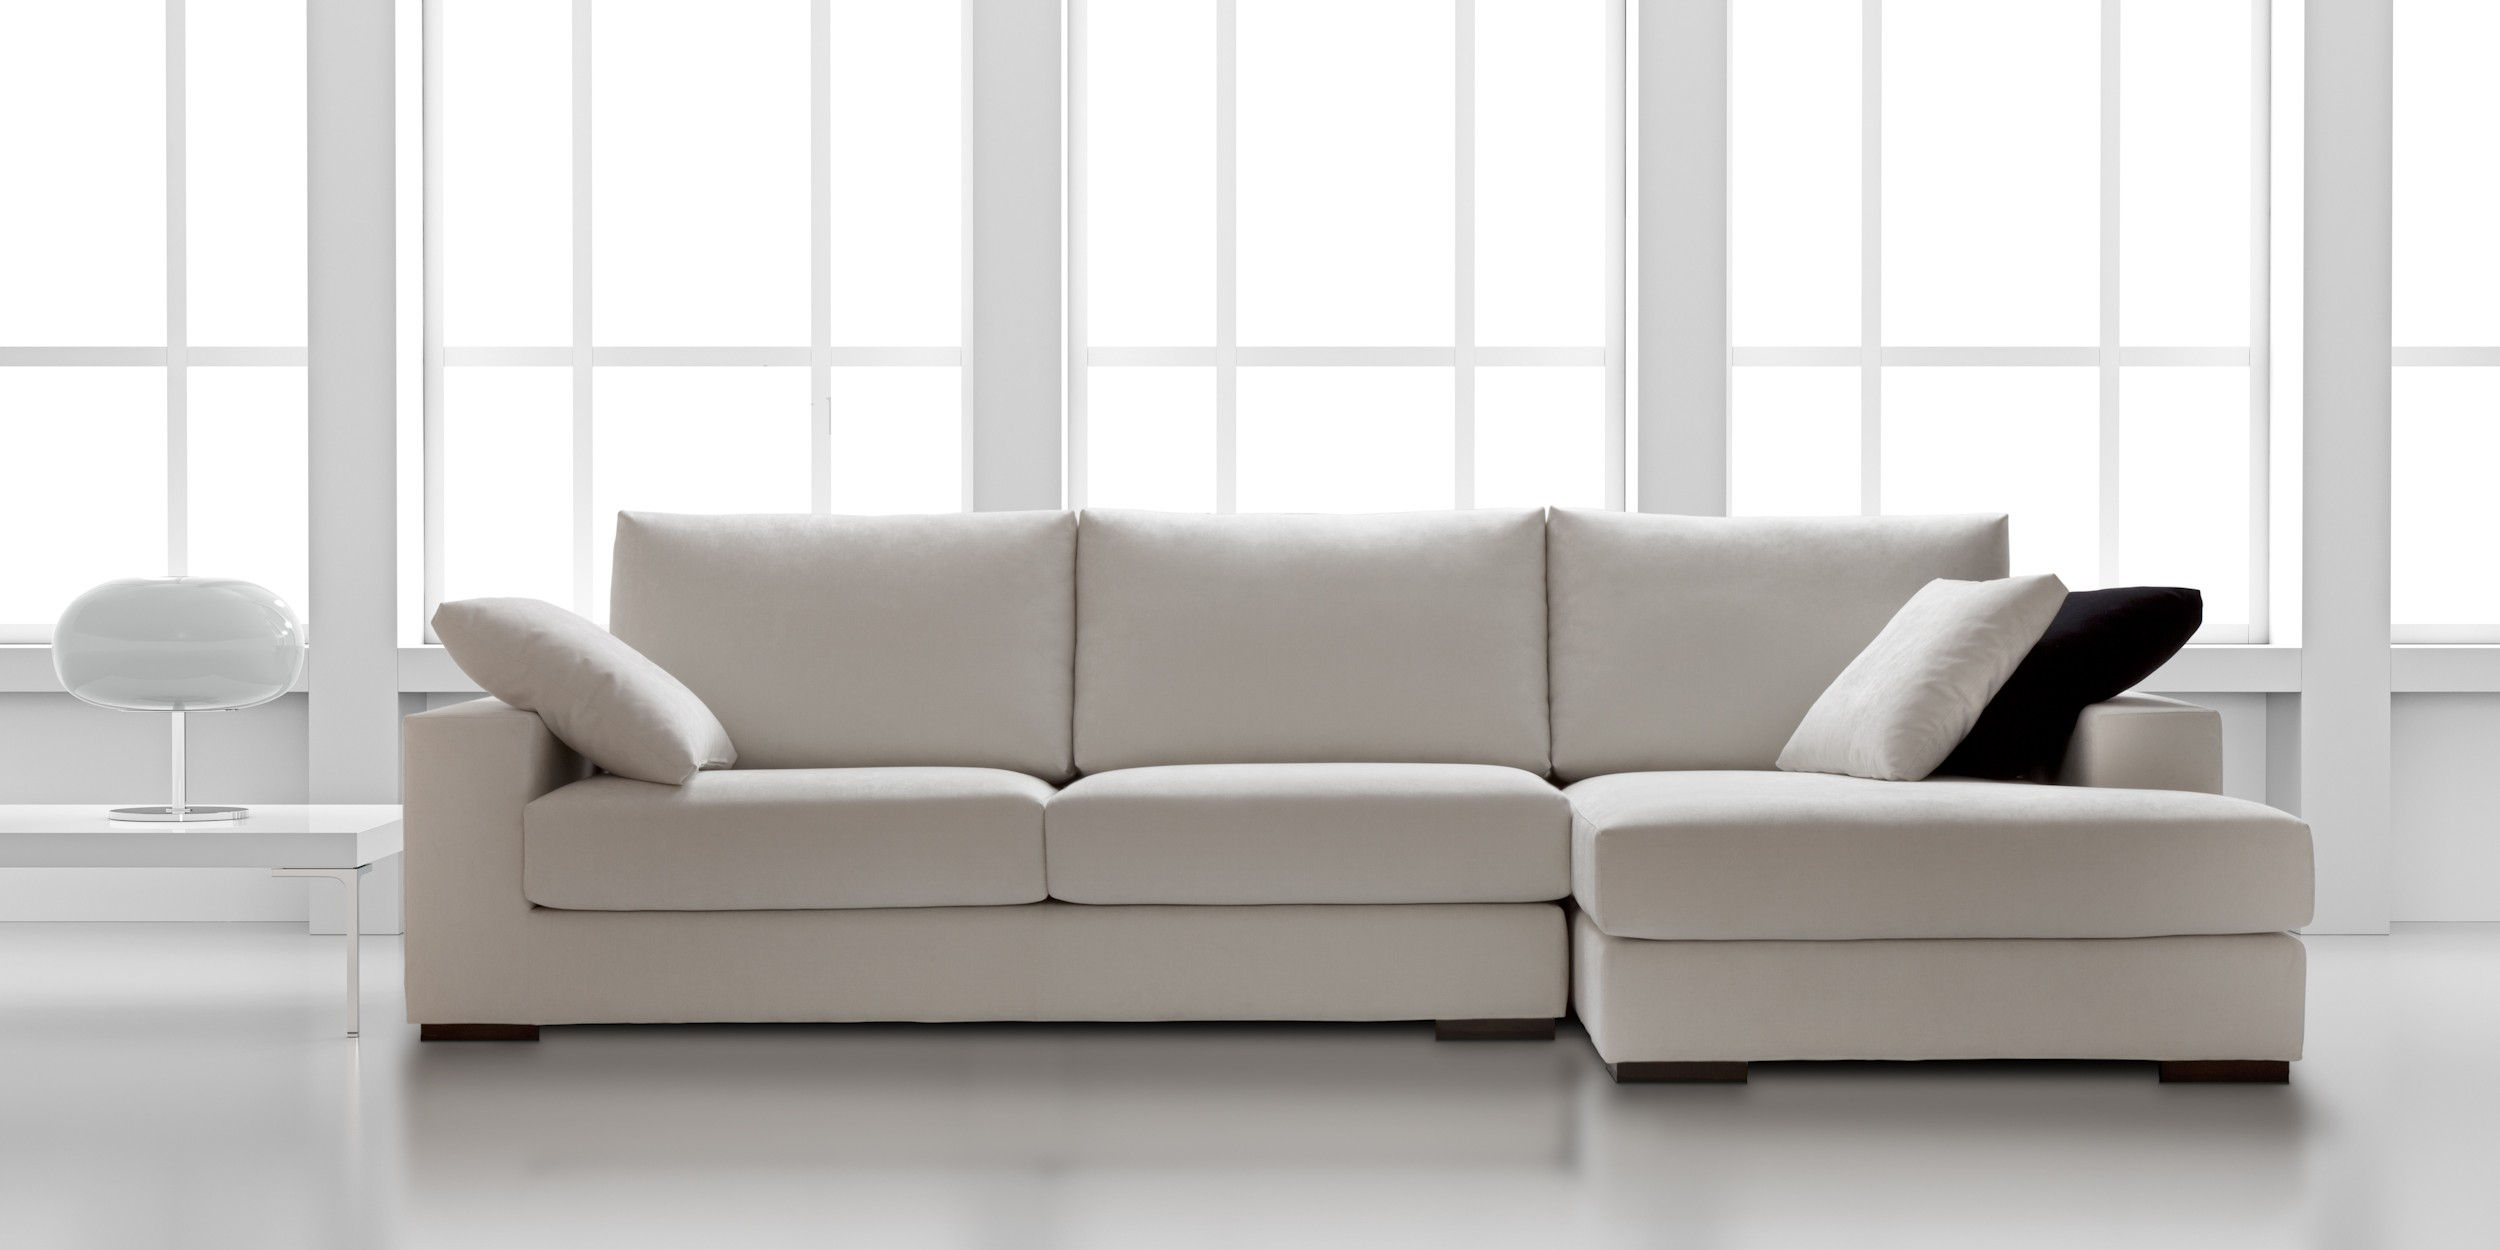 Sillones Valencia Comprar Sofa Madrid Good Comprar Sofa Madrid With Comprar